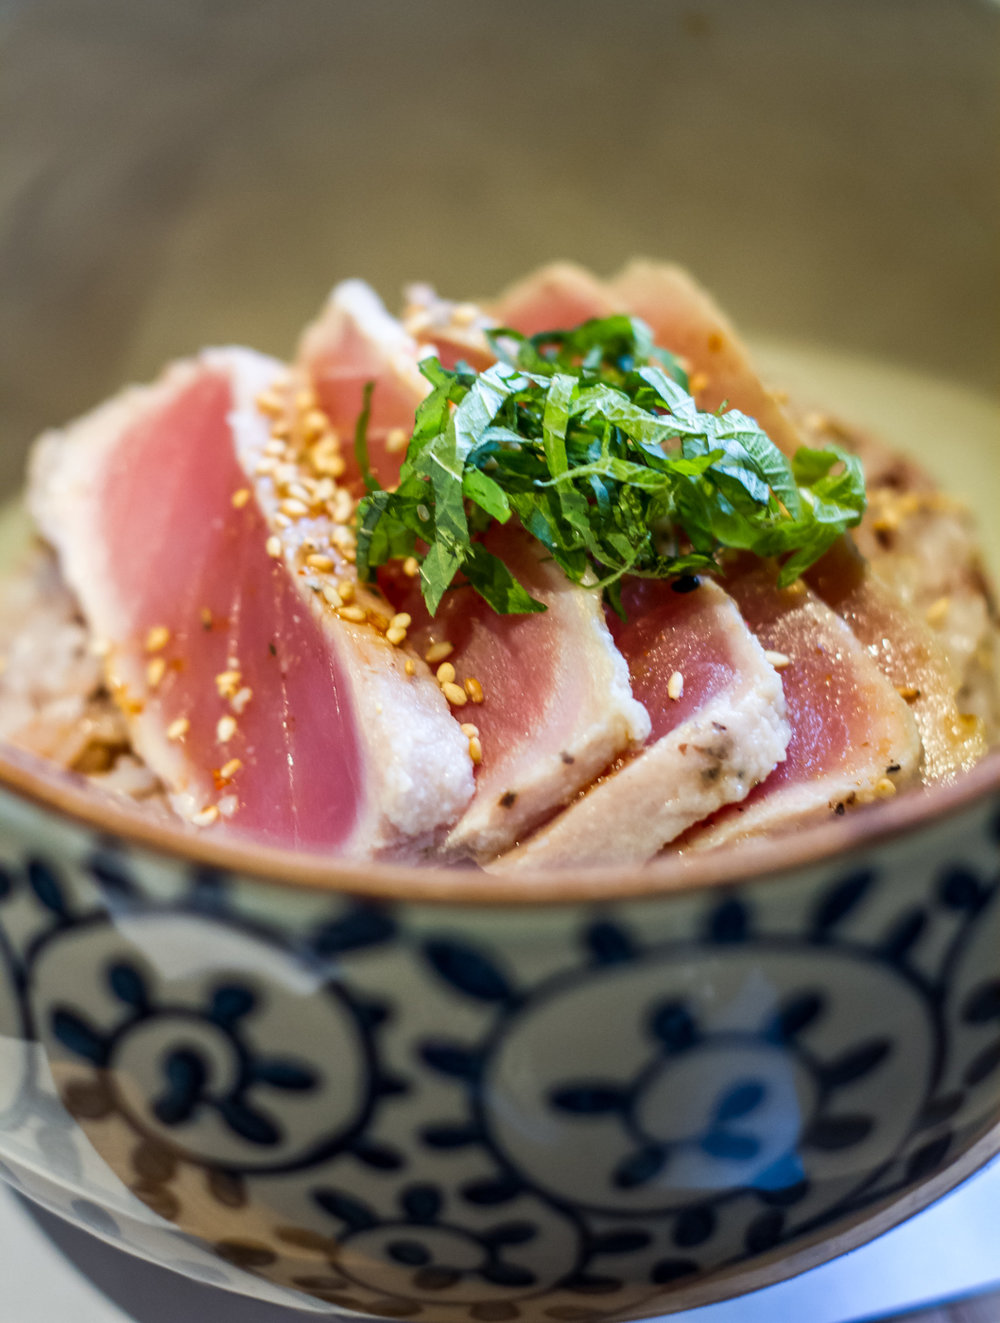 Tuna tataki at Cha An Tea House in NYC